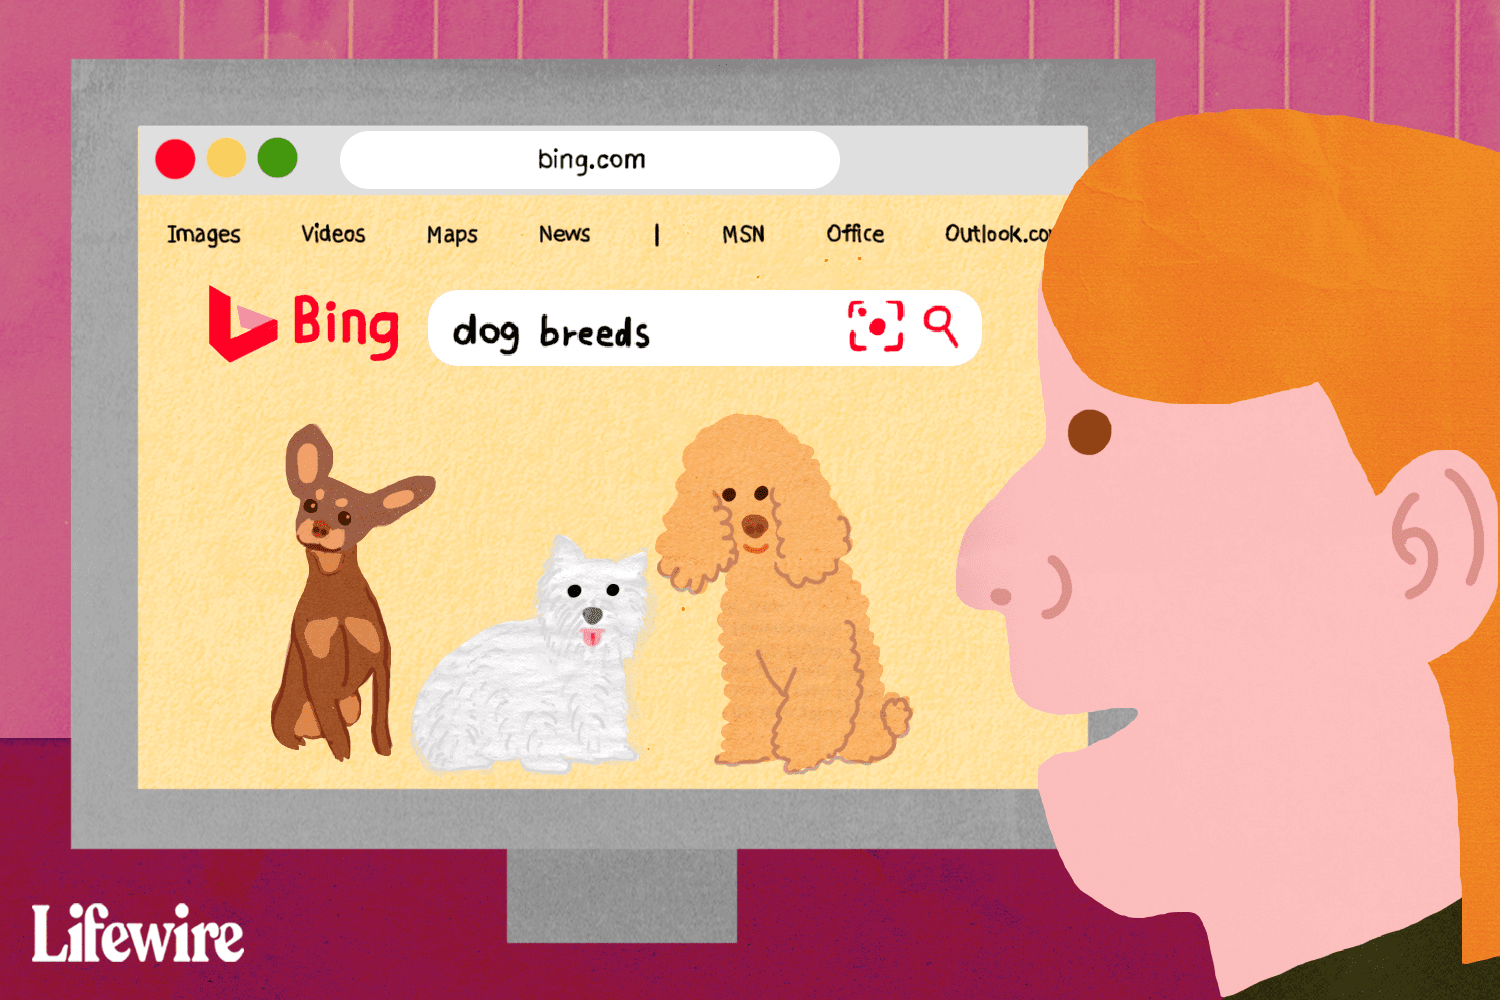 Person searching 'dog breeds' on Bing